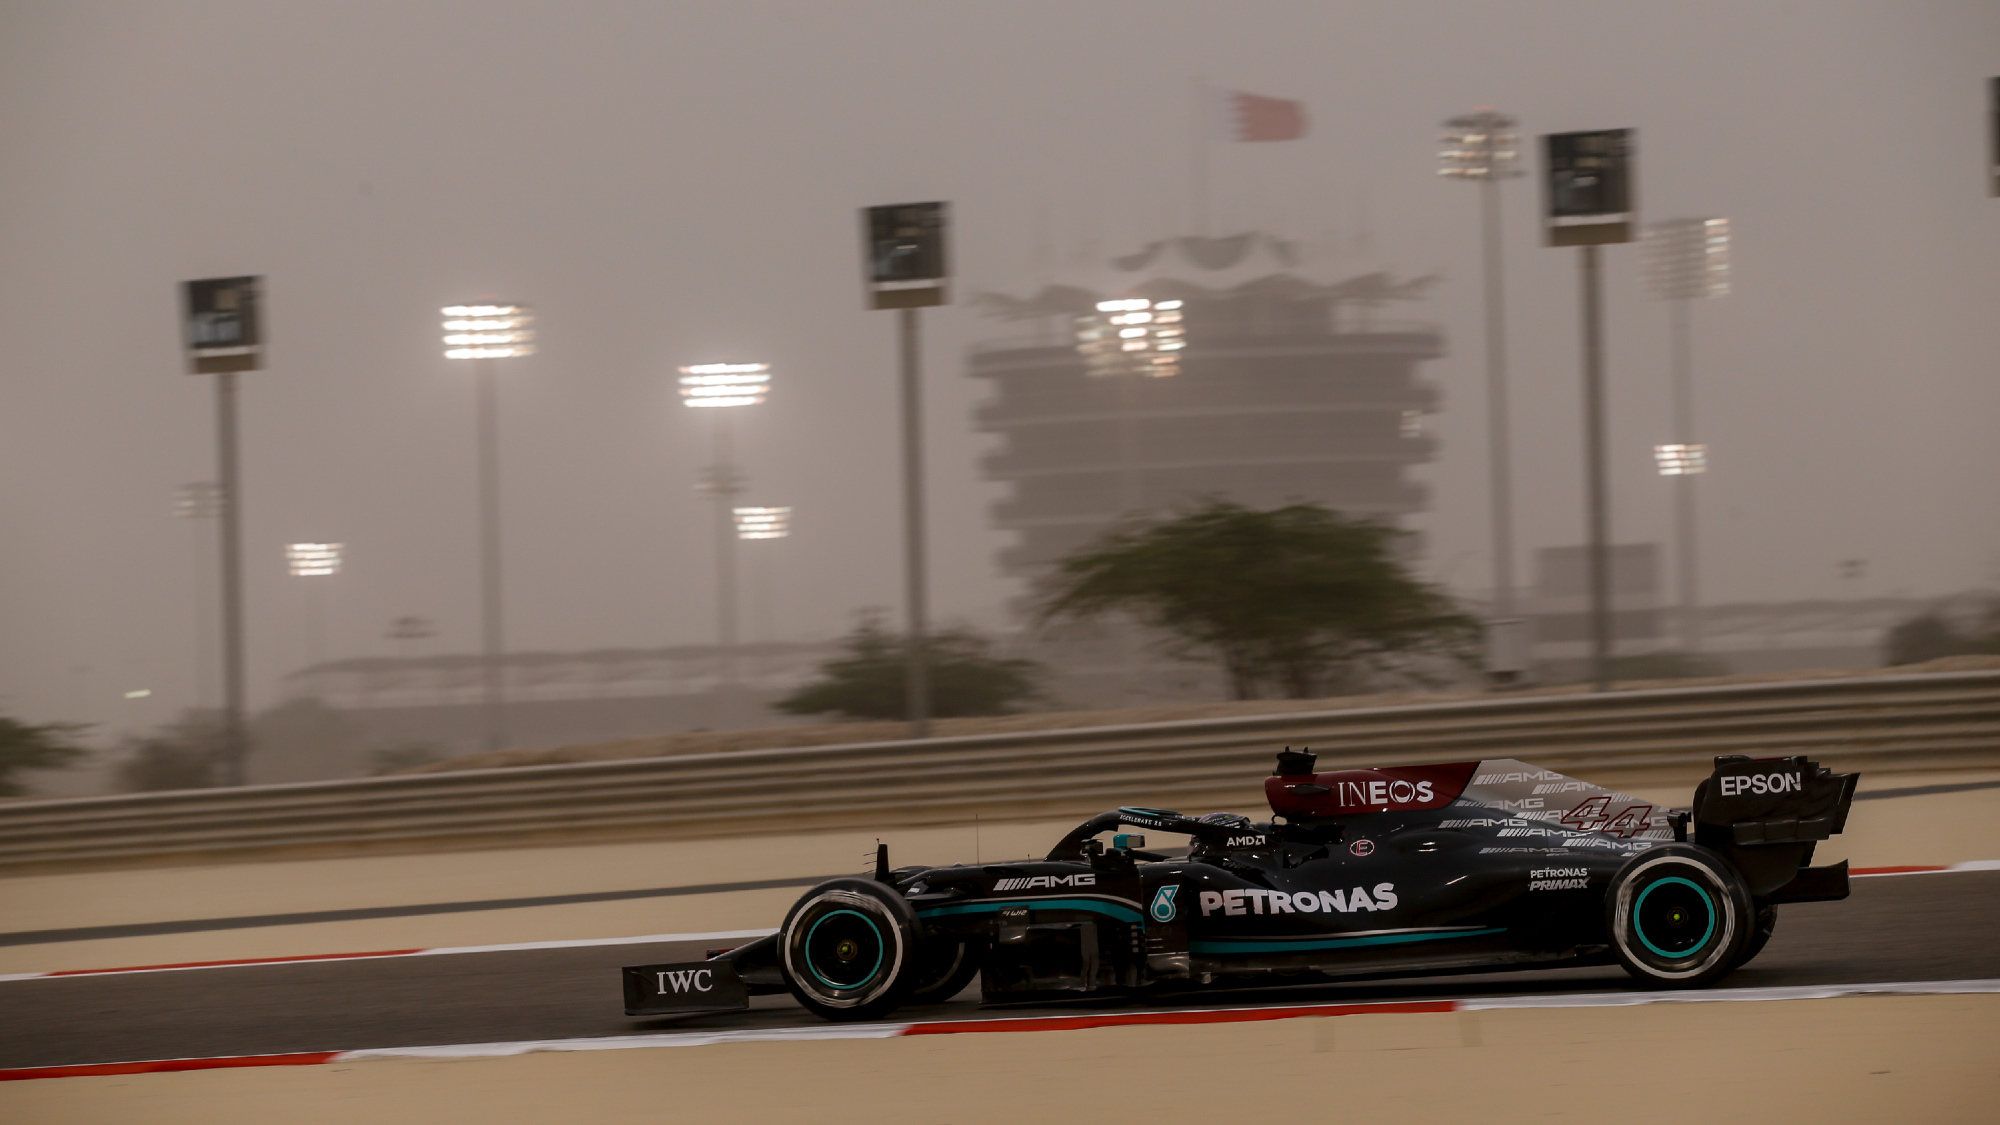 Title fight on the cards? 2021 Bahrain Grand Prix – what to watch